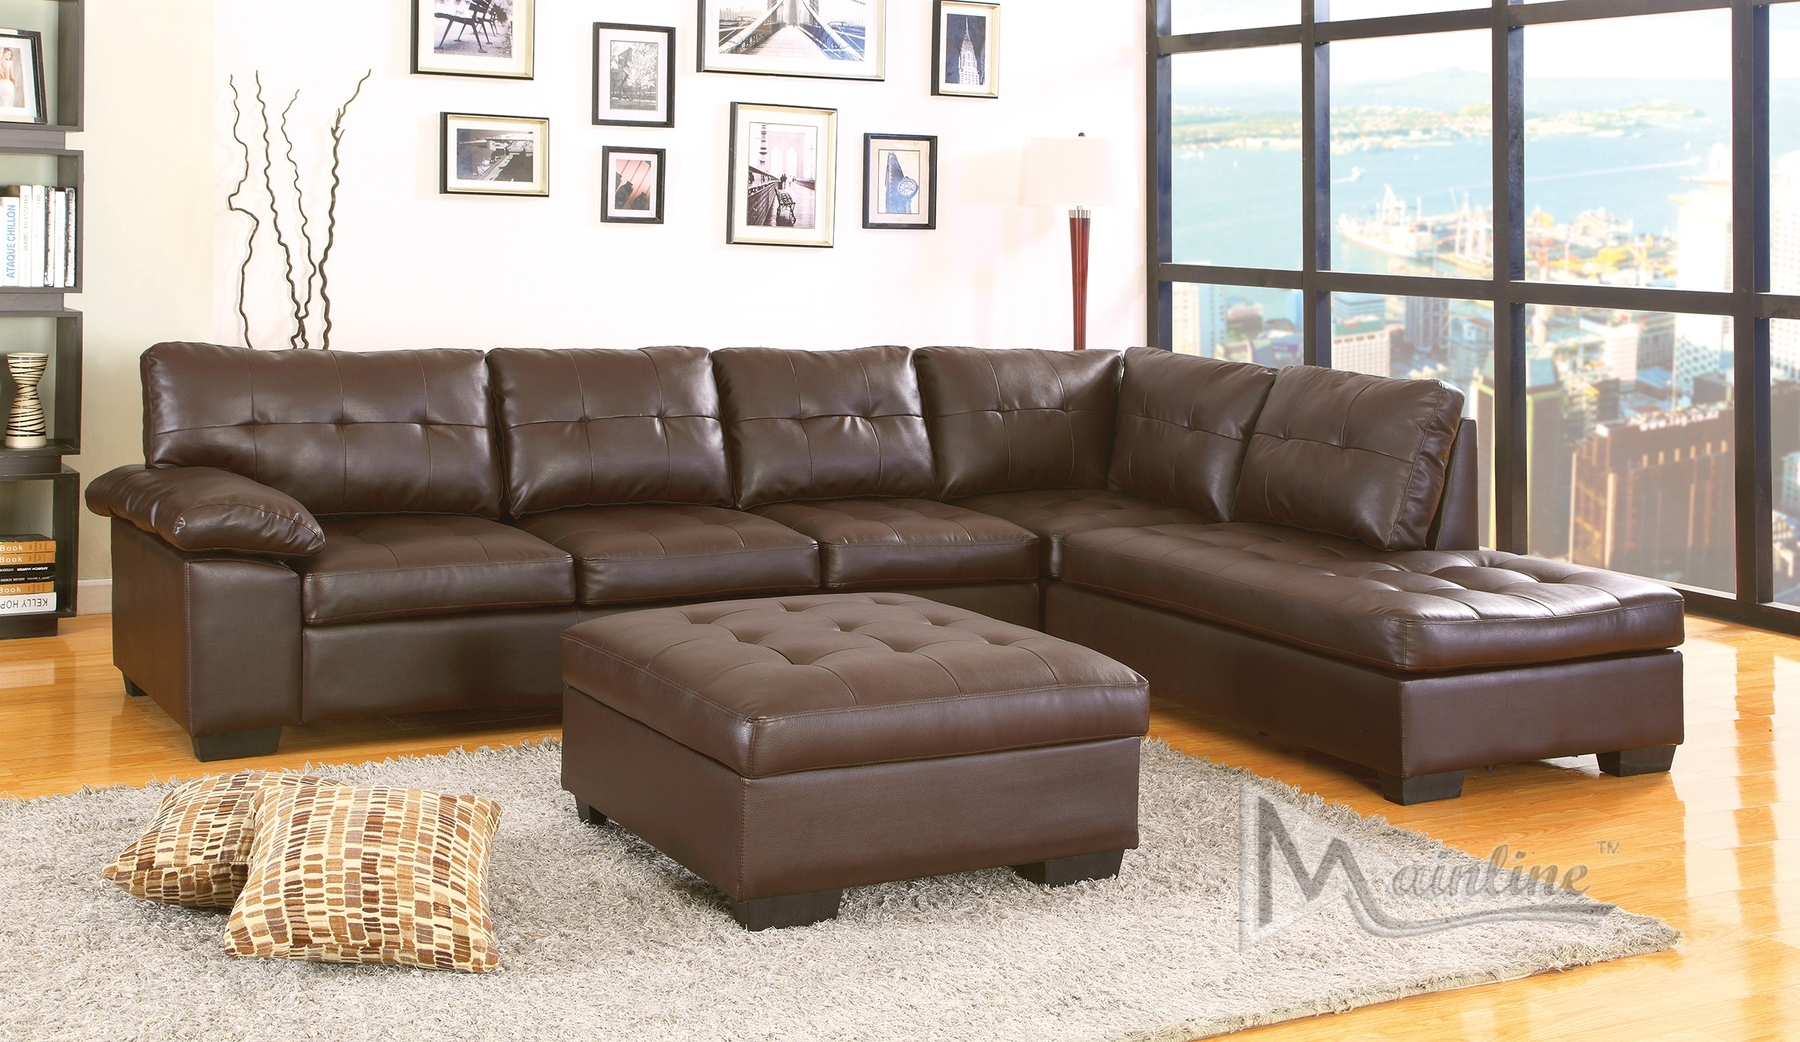 Dallas Chocolate Sectional Sofa 70130 Mainline Inc Sectional Sofas with regard to Chocolate Sectional Sofas (Image 4 of 15)